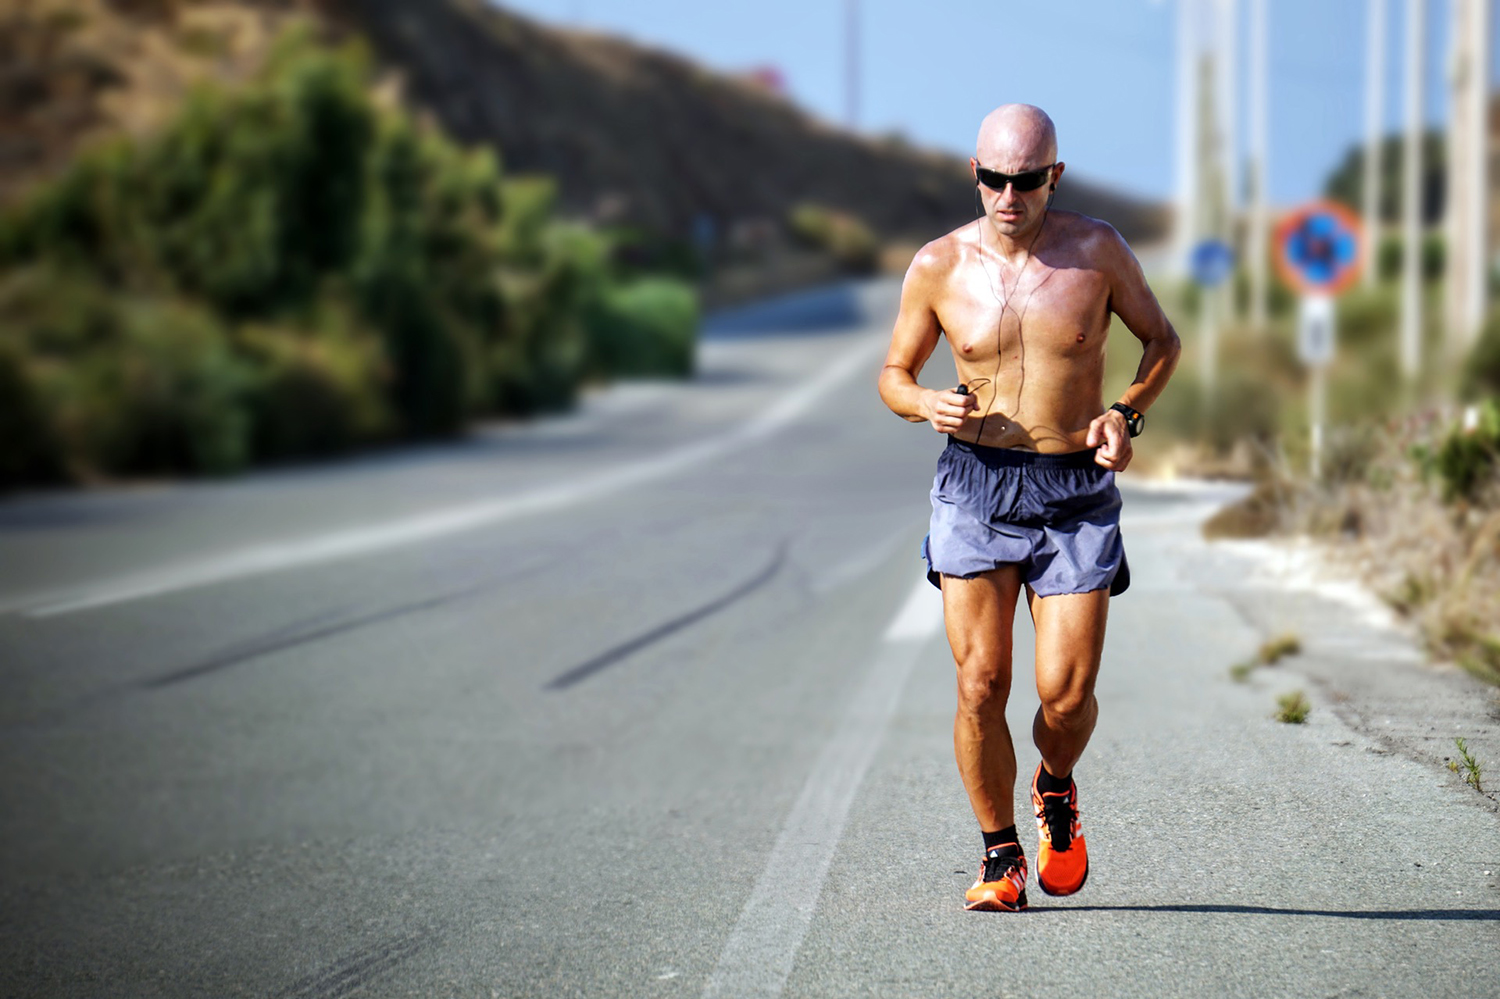 Shirtless Man Running On The Road on A Sunny Day